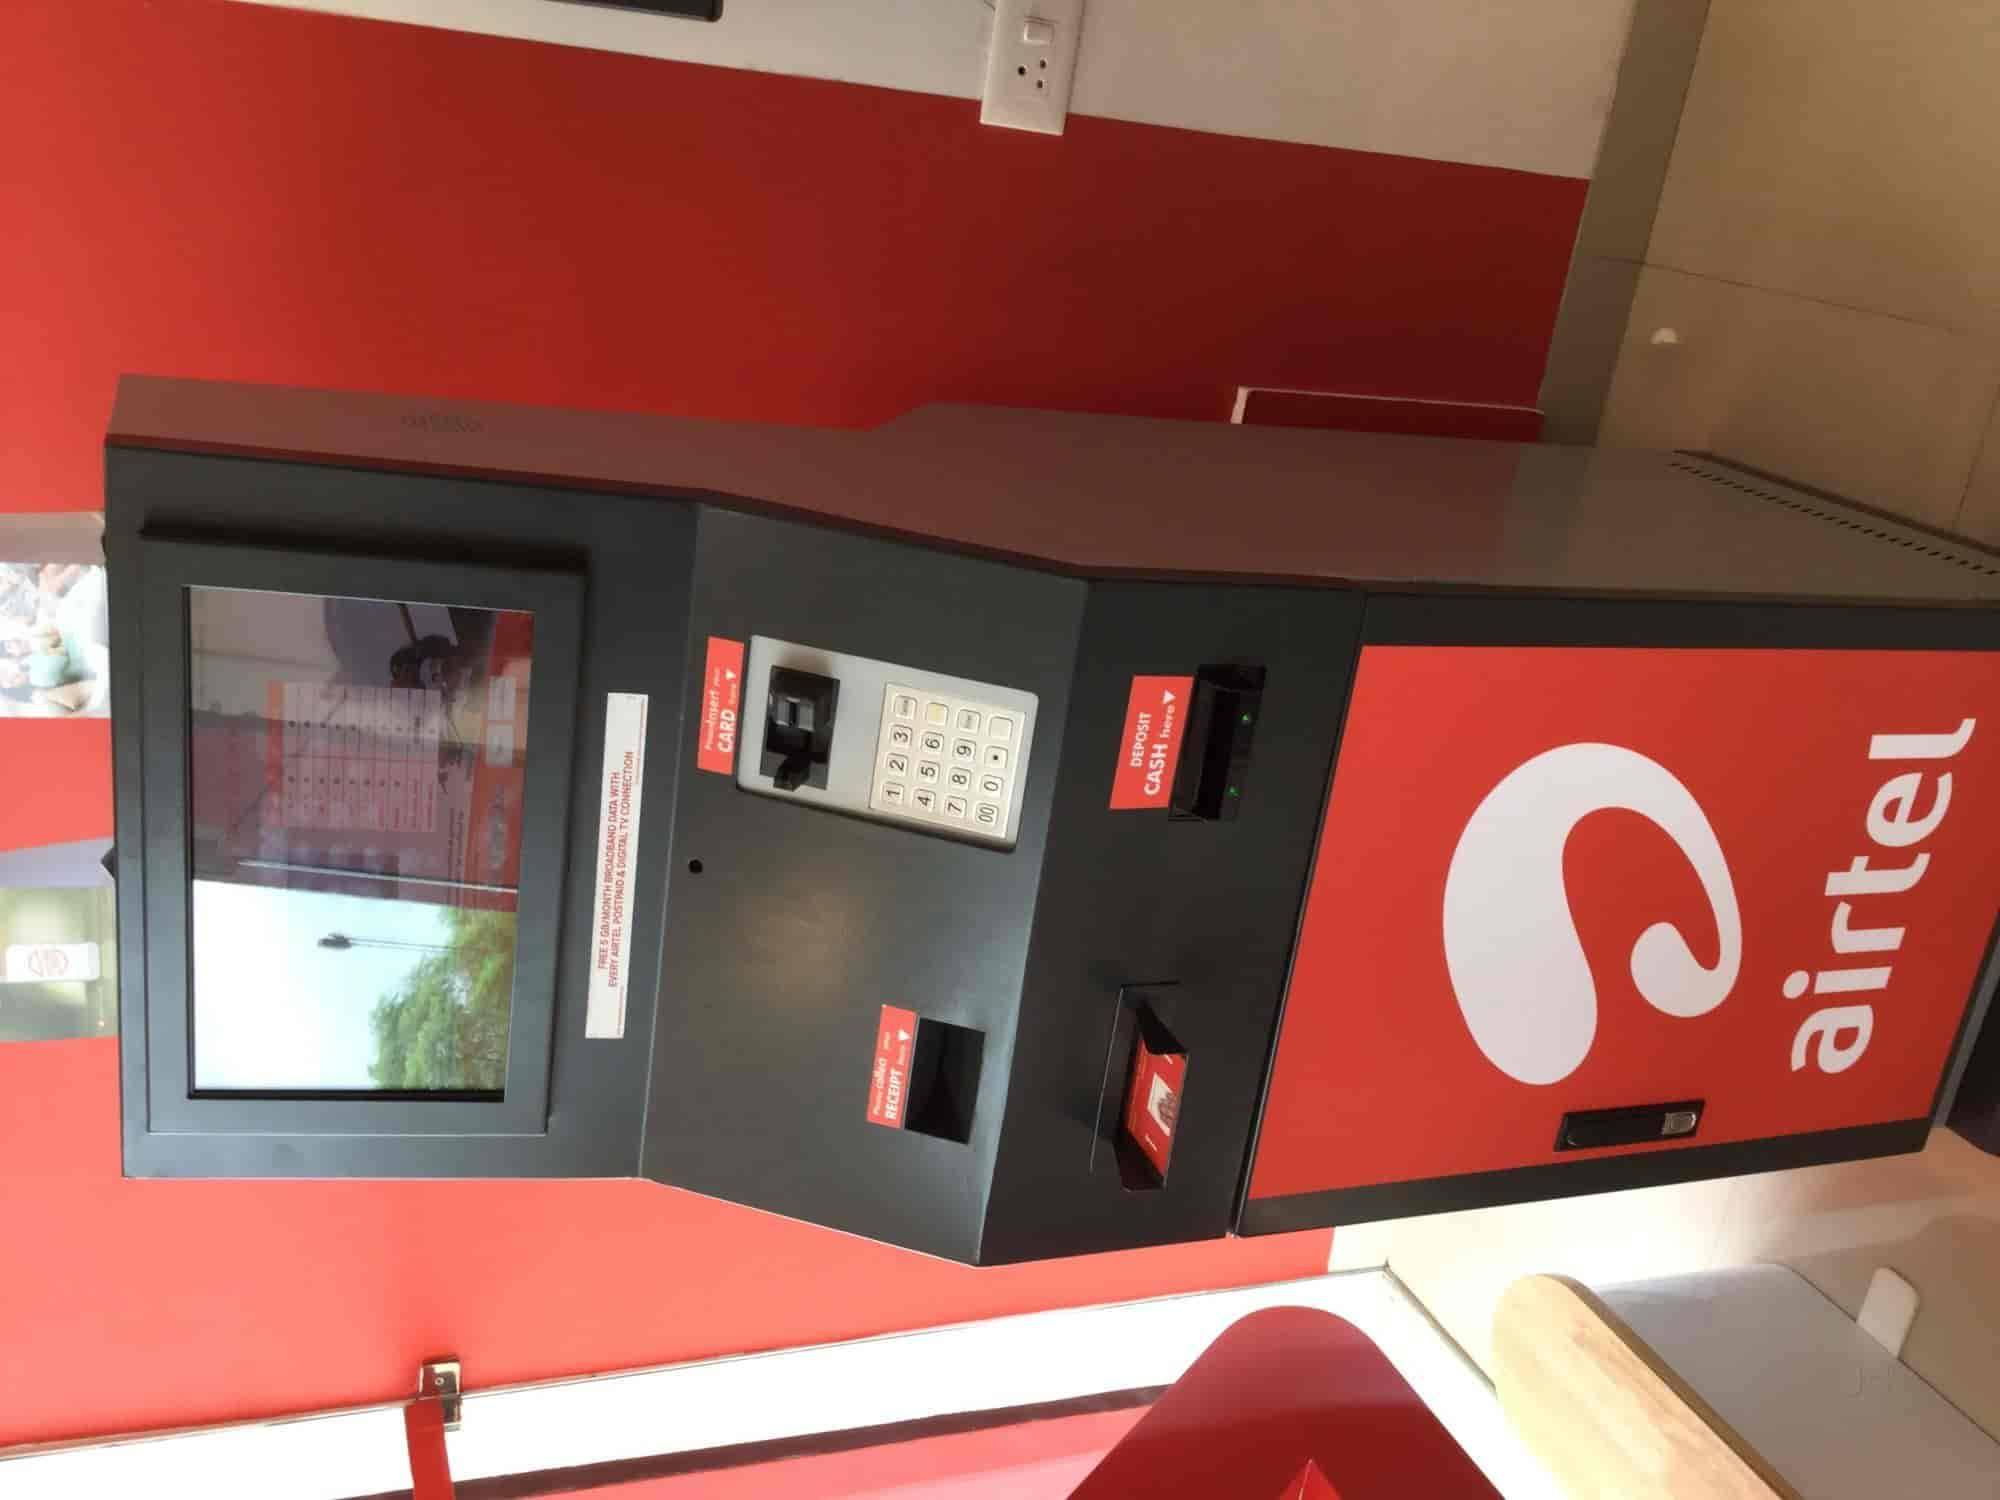 Airtel L t d, Chandigarh Sector 46c - Postpaid Mobile Phone